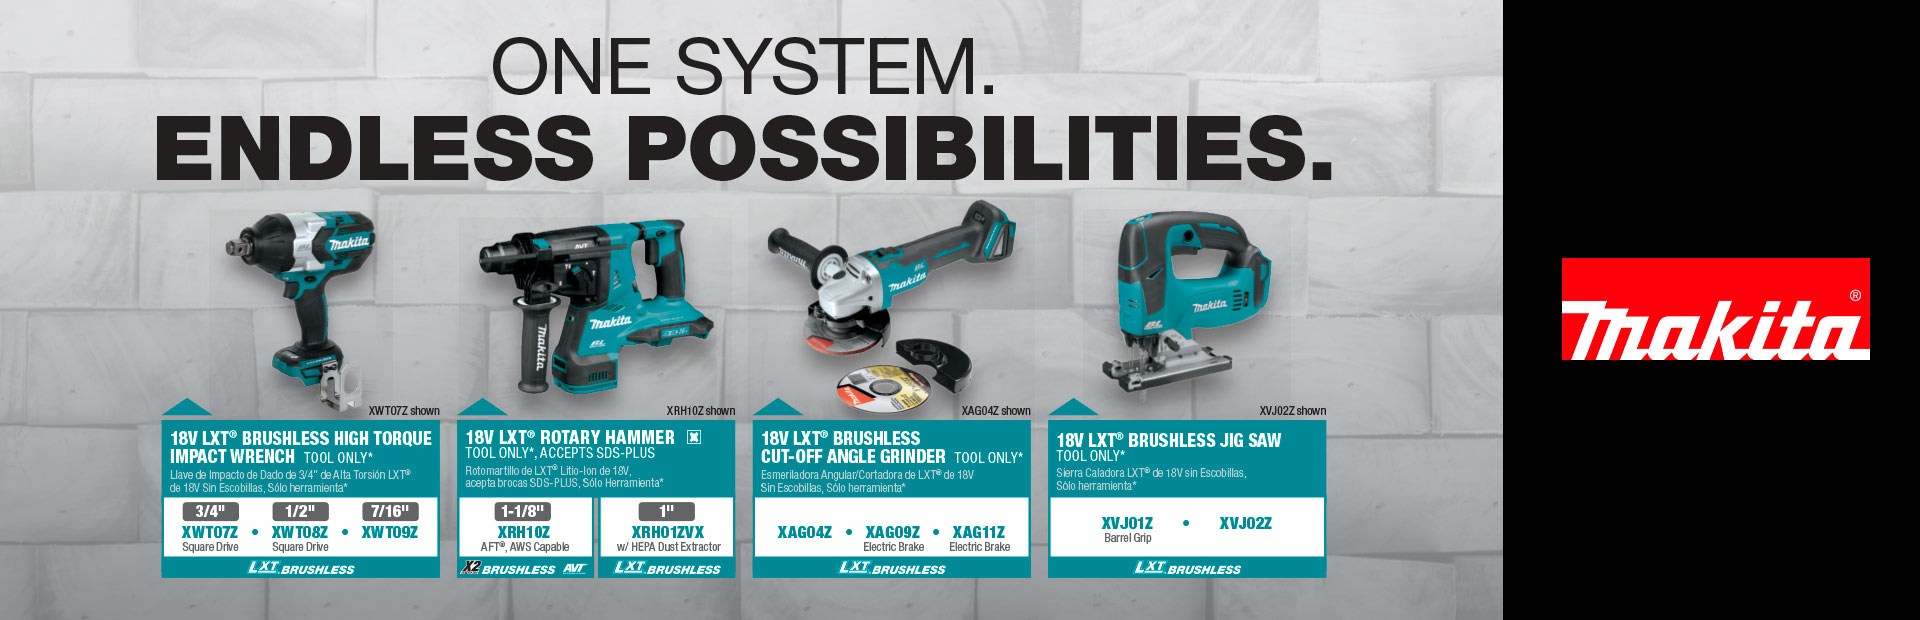 Makita: One System Endless Possibilities